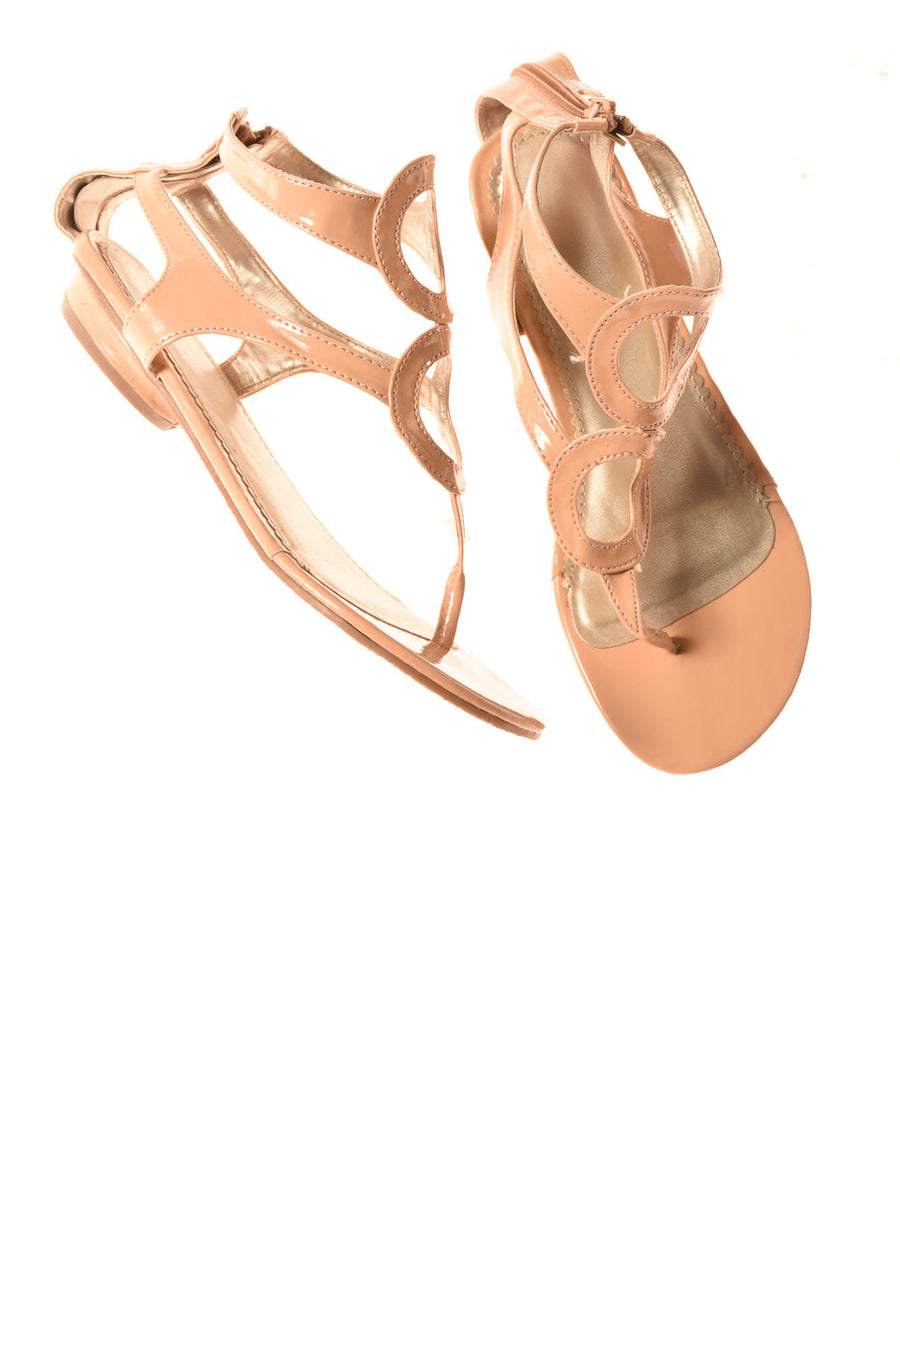 USED No Brand Women's Shoes 9 Tan